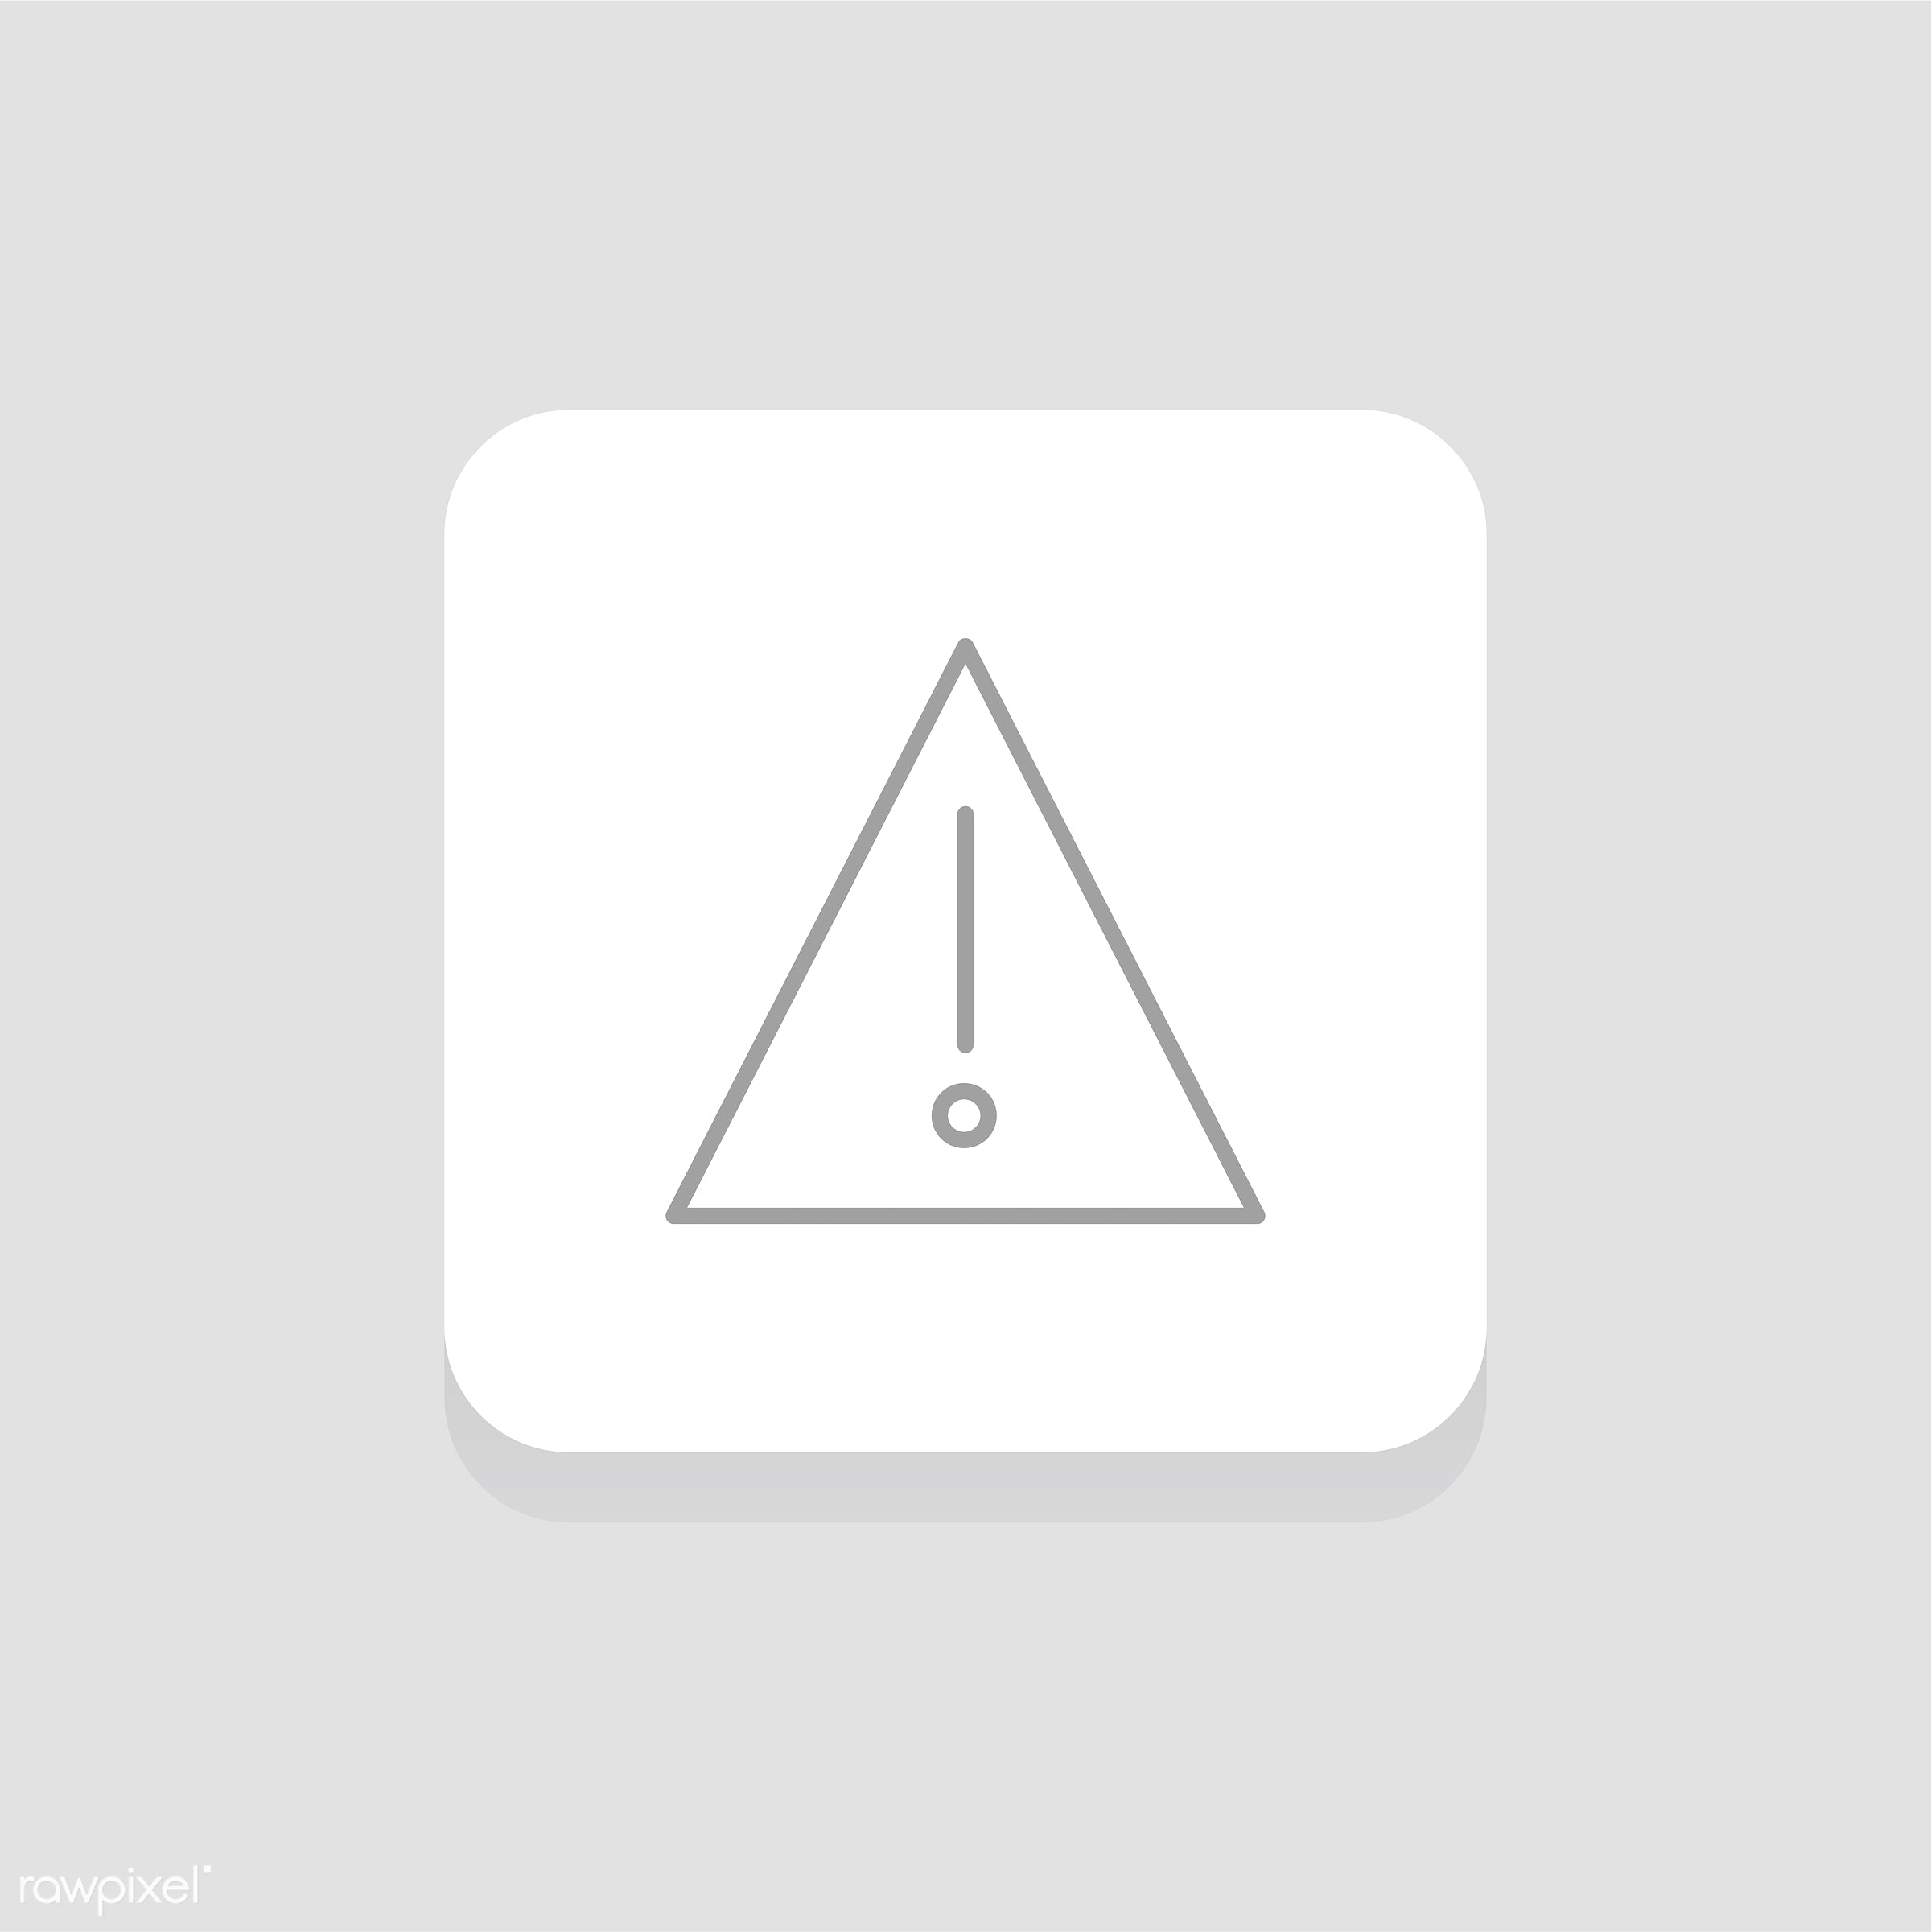 Vector set of website icons - design, flat, graphic, icon, illustration, isolated, layout, style, symbol, vector, web,...